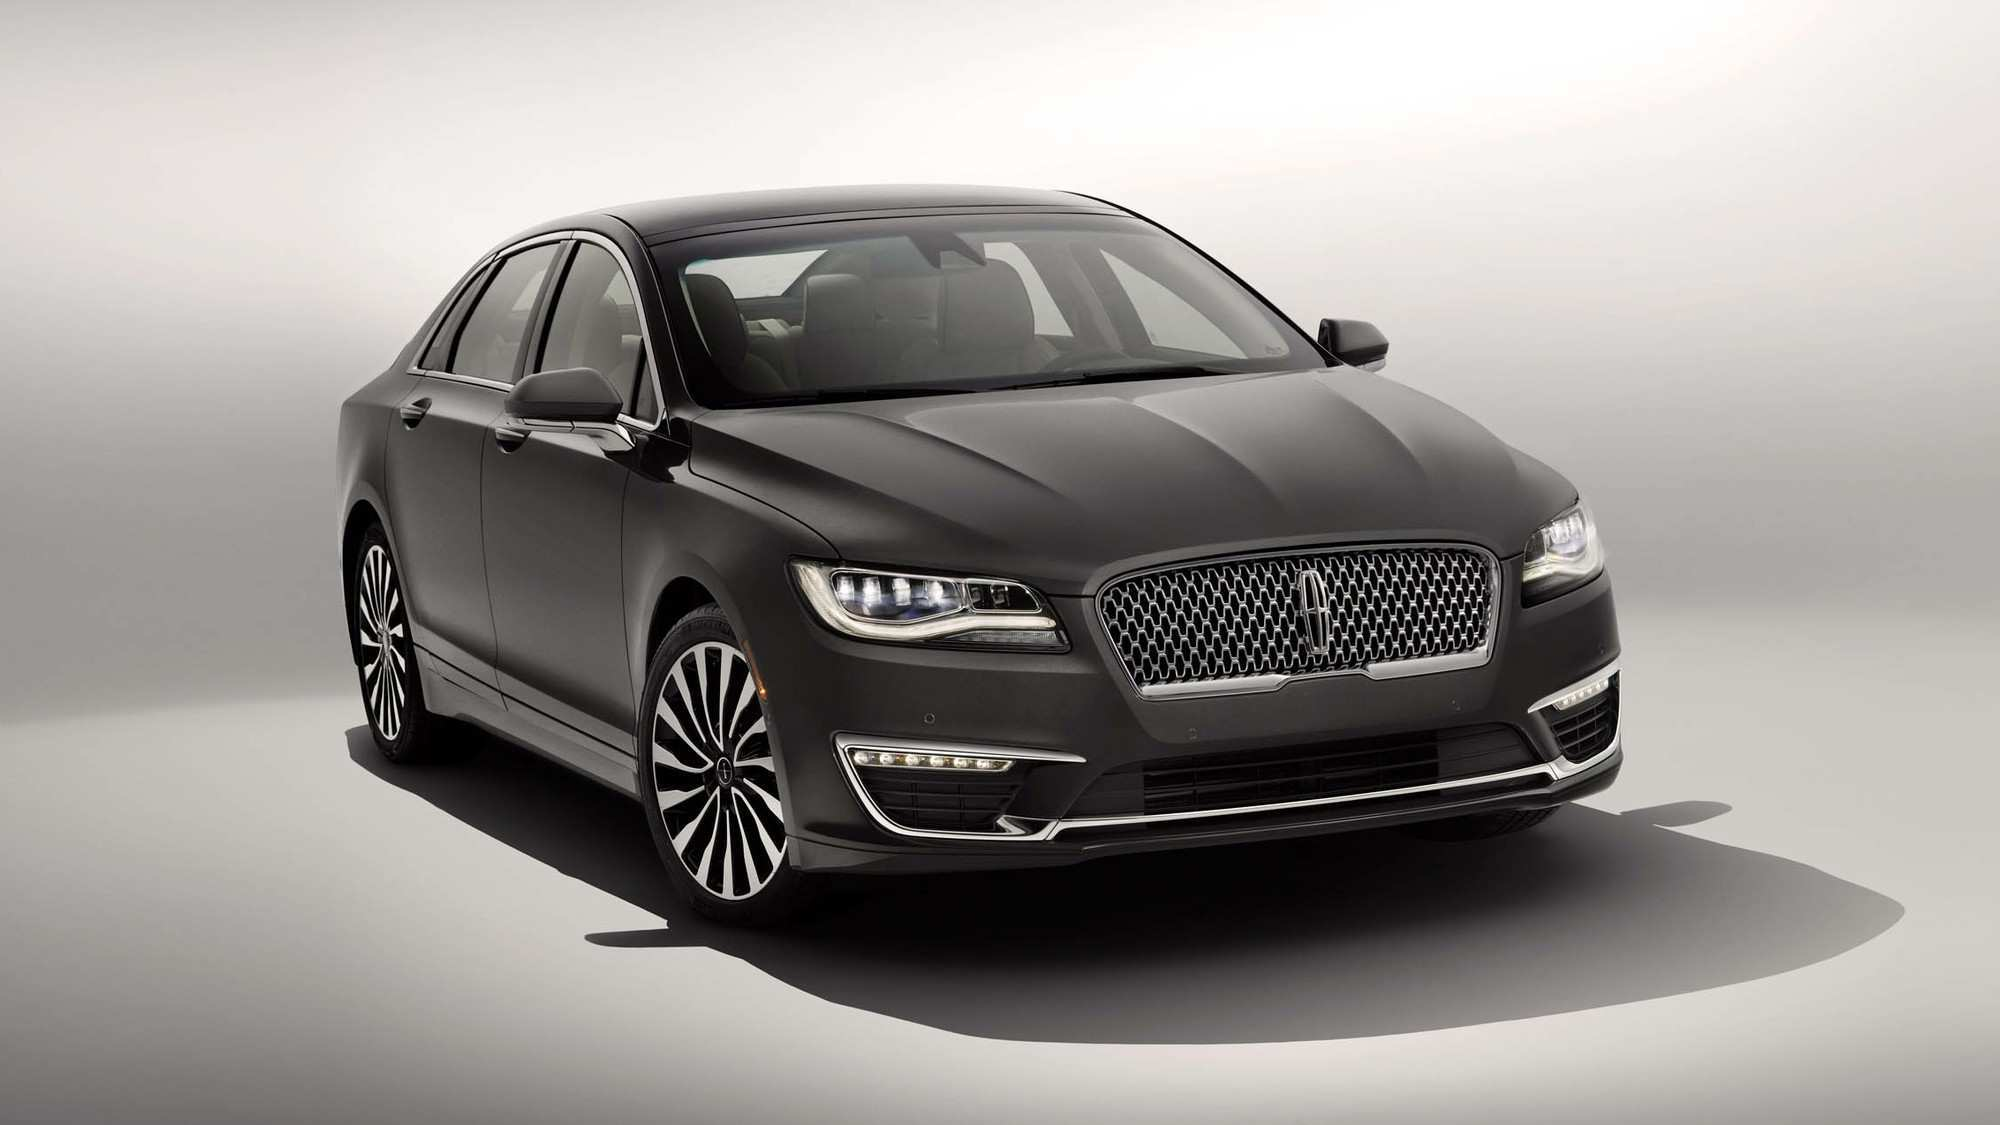 80 The Best Spy Shots Lincoln Mkz Sedan Price